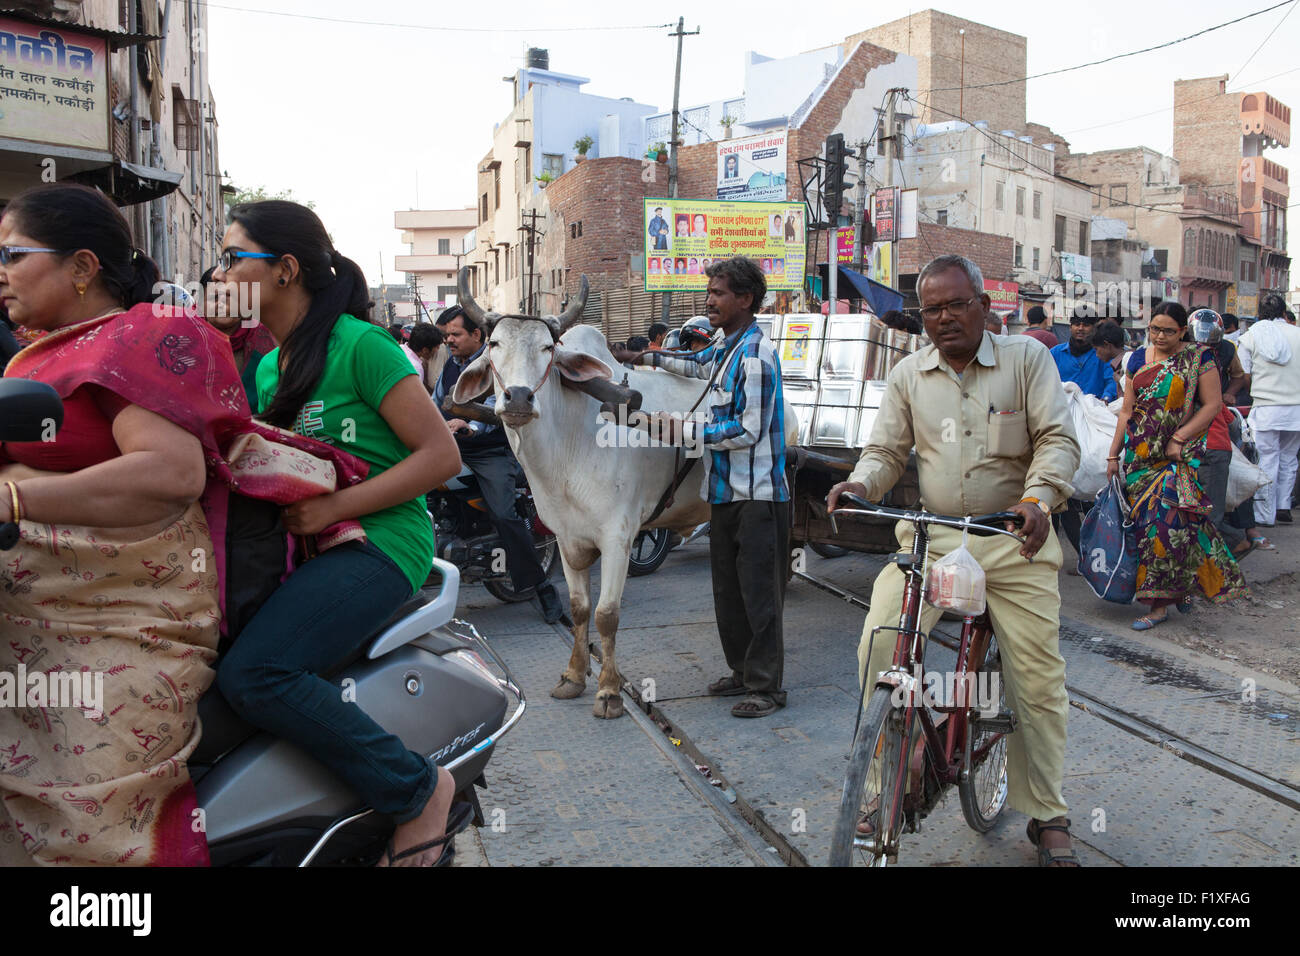 A man leads his bullock-drawn cart across crowded rail tracks in Bikaner - Stock Image